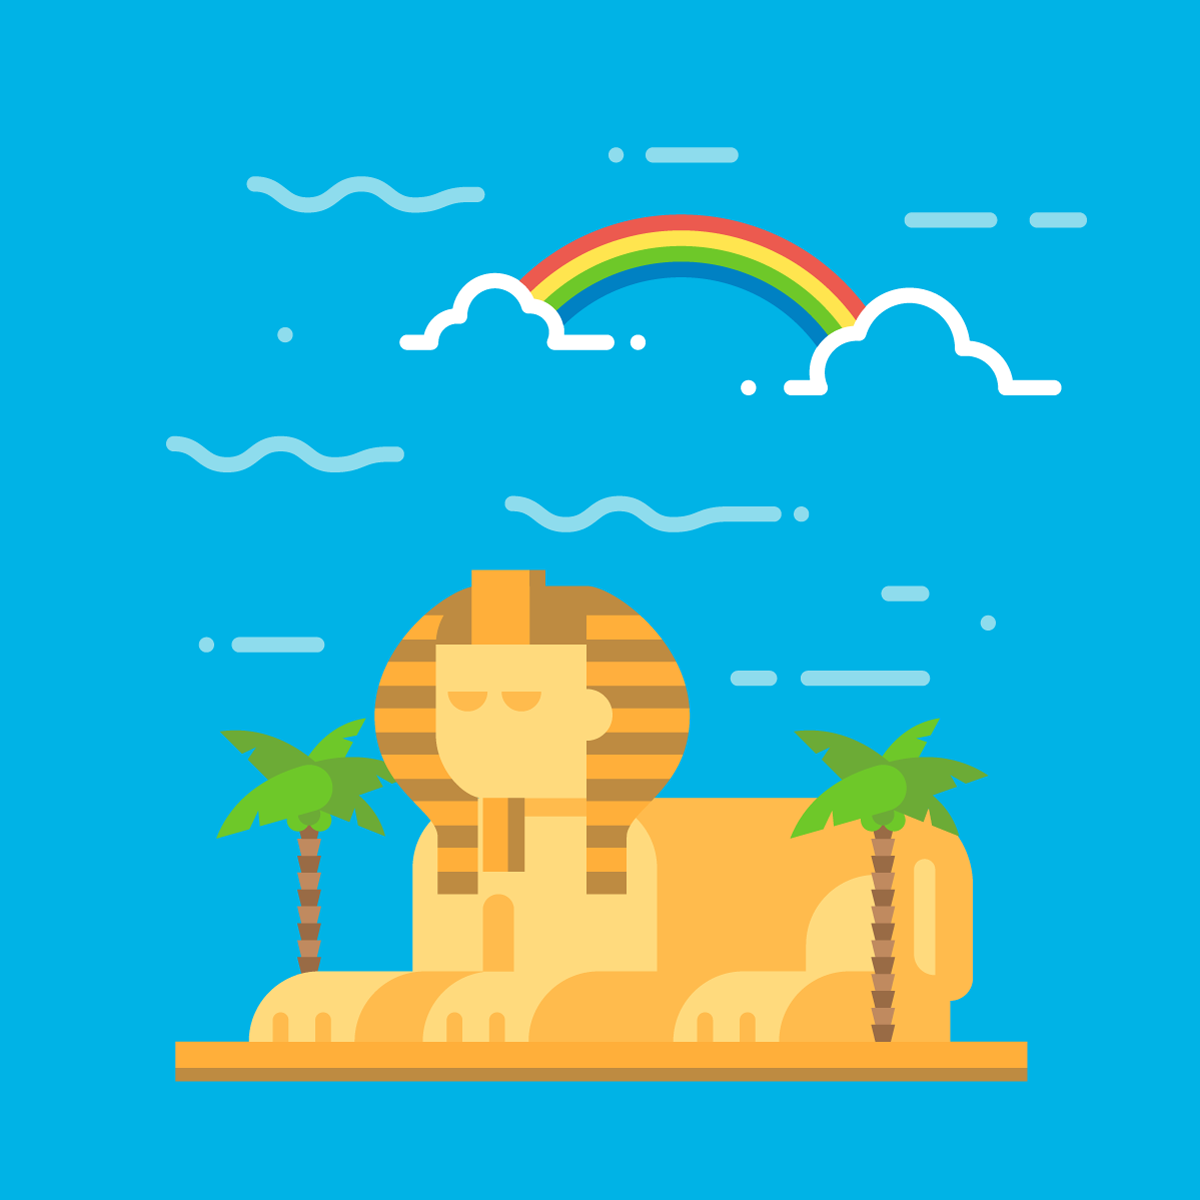 Pixelated vector image of the Sphinx